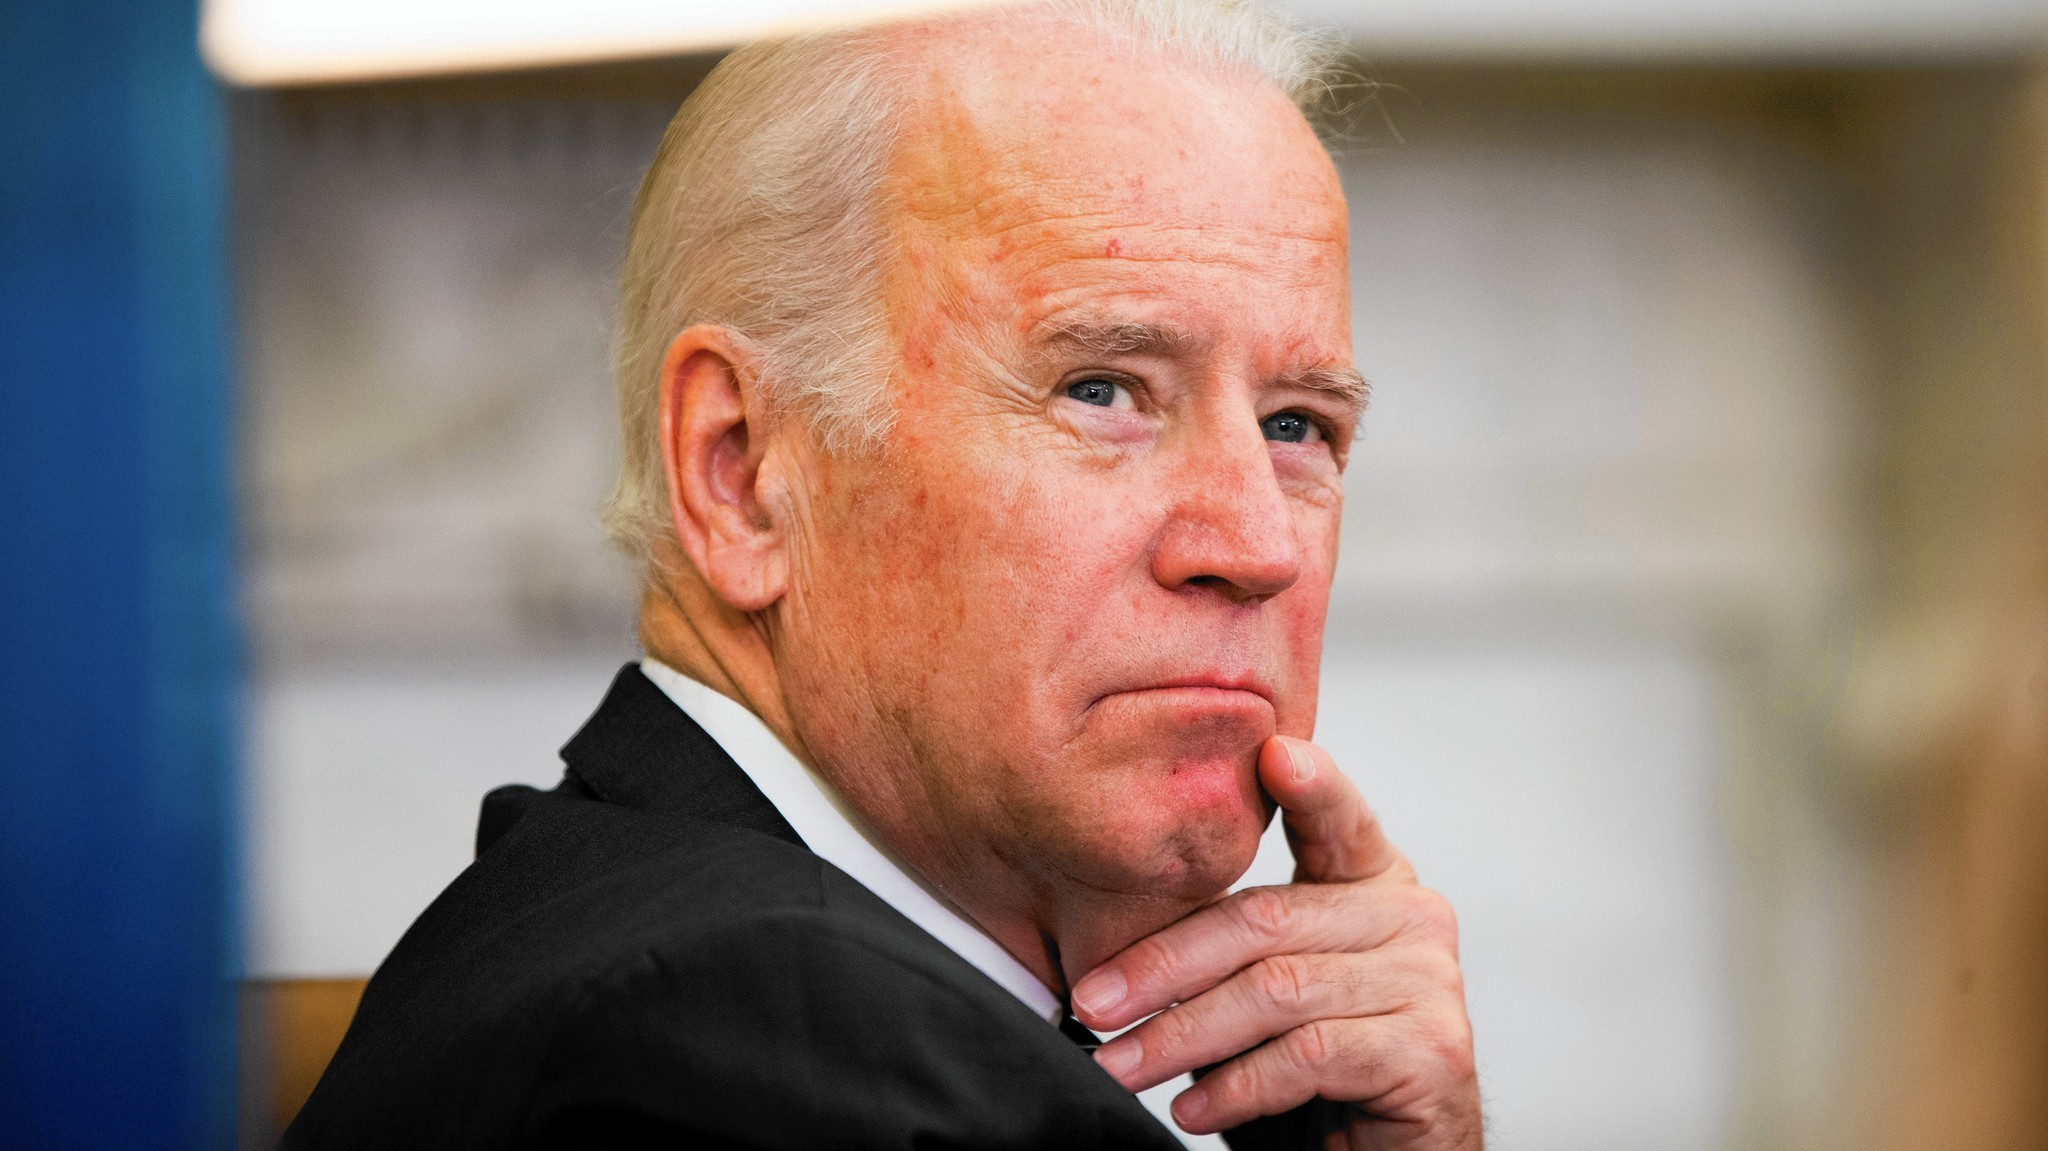 joe biden - photo #31